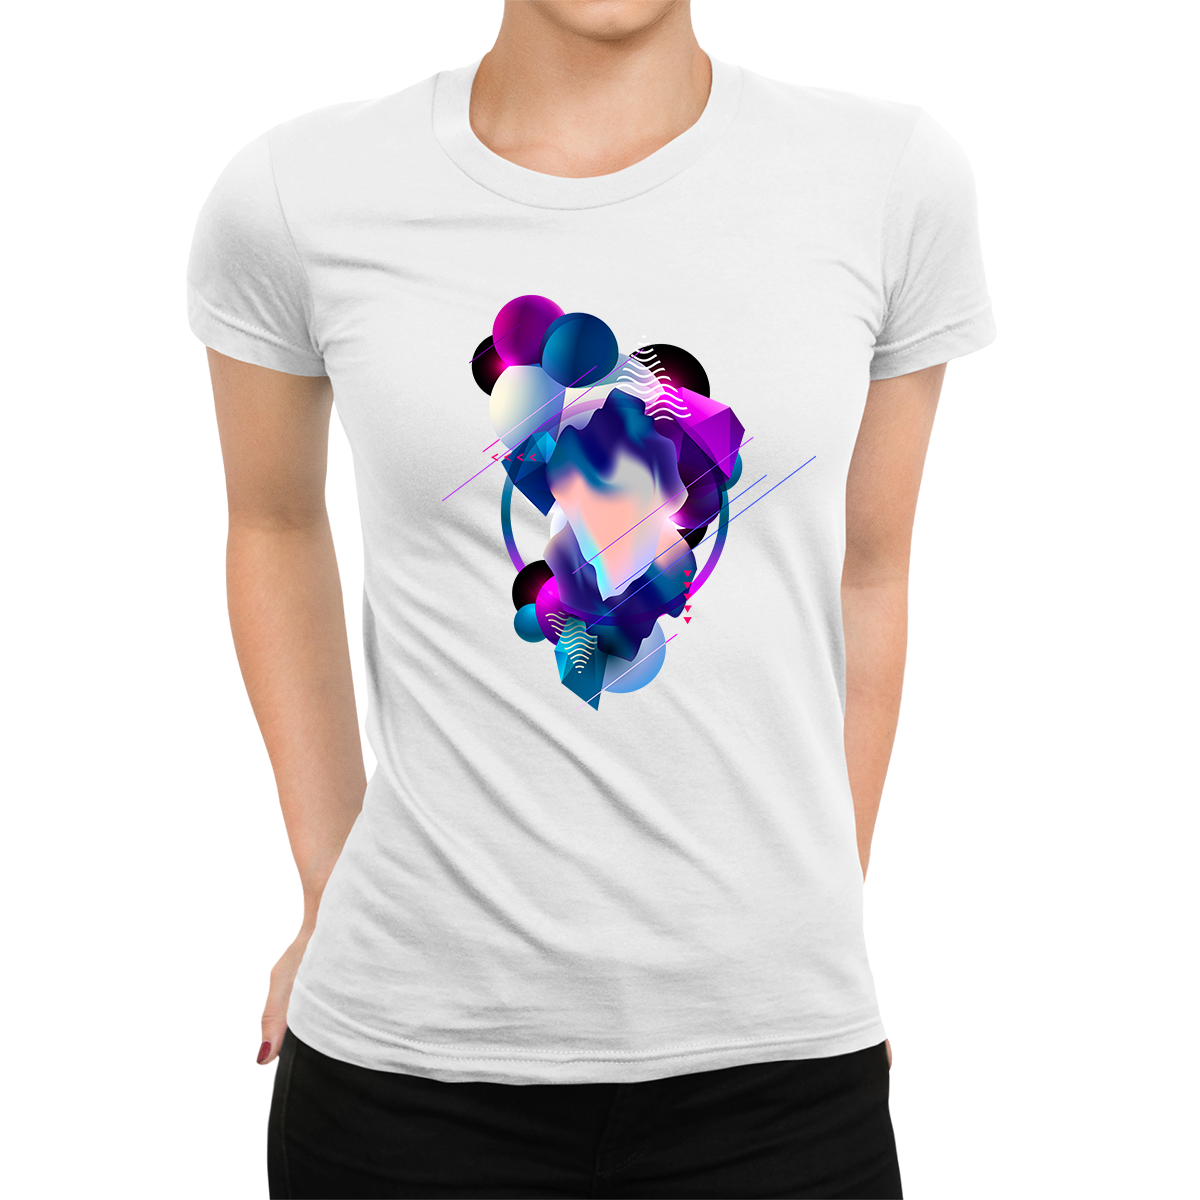 Women's Floating 3D Fluid Abstract Geometric Elements Unique Crew Neck White T-shirt